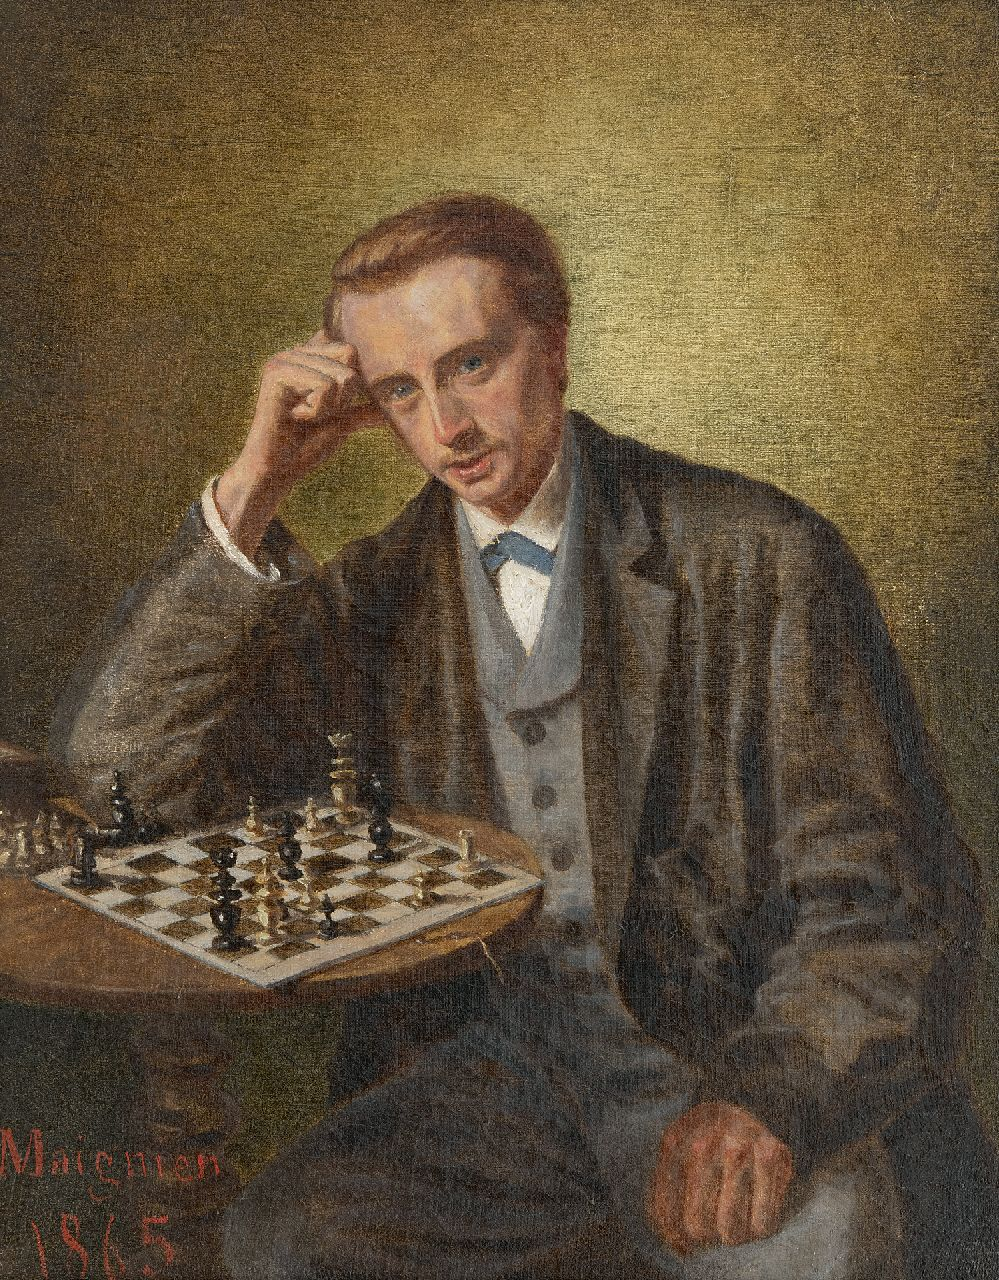 Maignien | The chess player, oil on canvas laid down on panel, 30.5 x 24.2 cm, signed l.l. and dated 1865